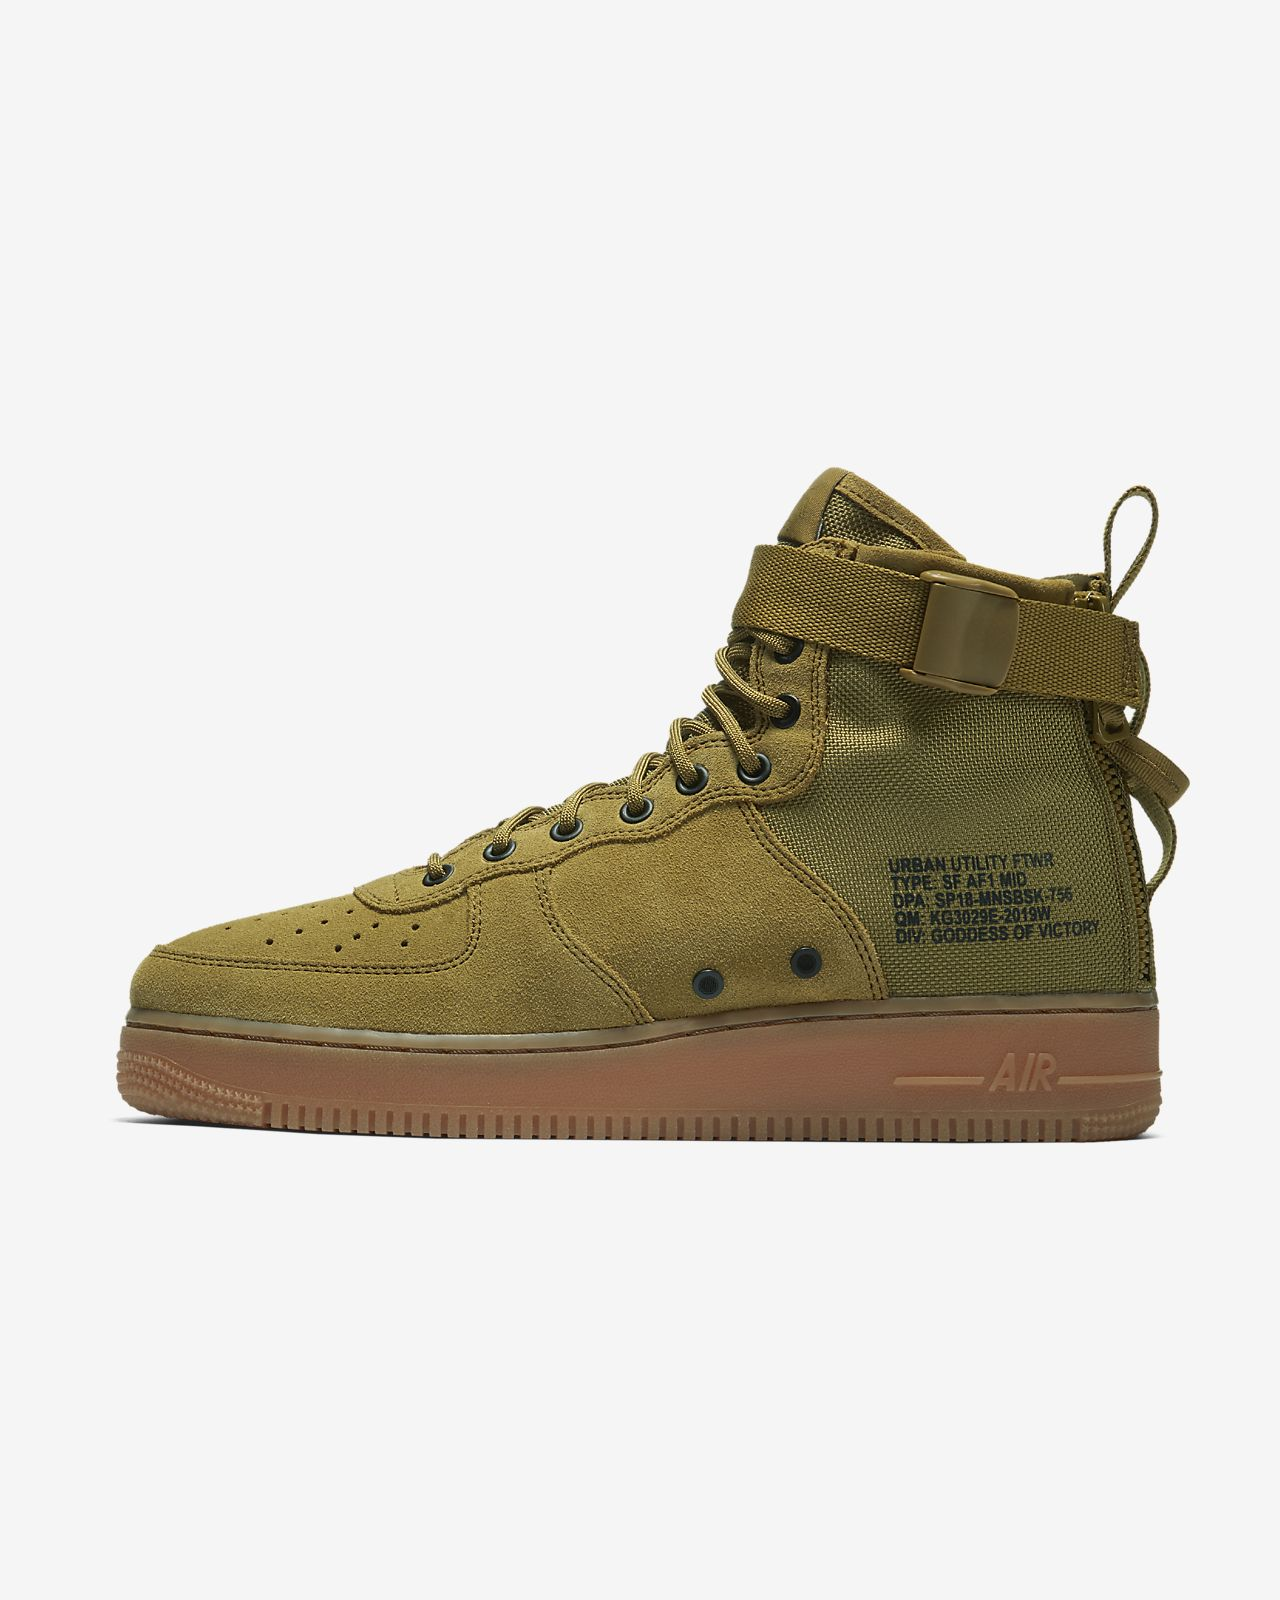 new style 63b6e 949e7 ... Nike SF Air Force 1 Mid Men s Shoe